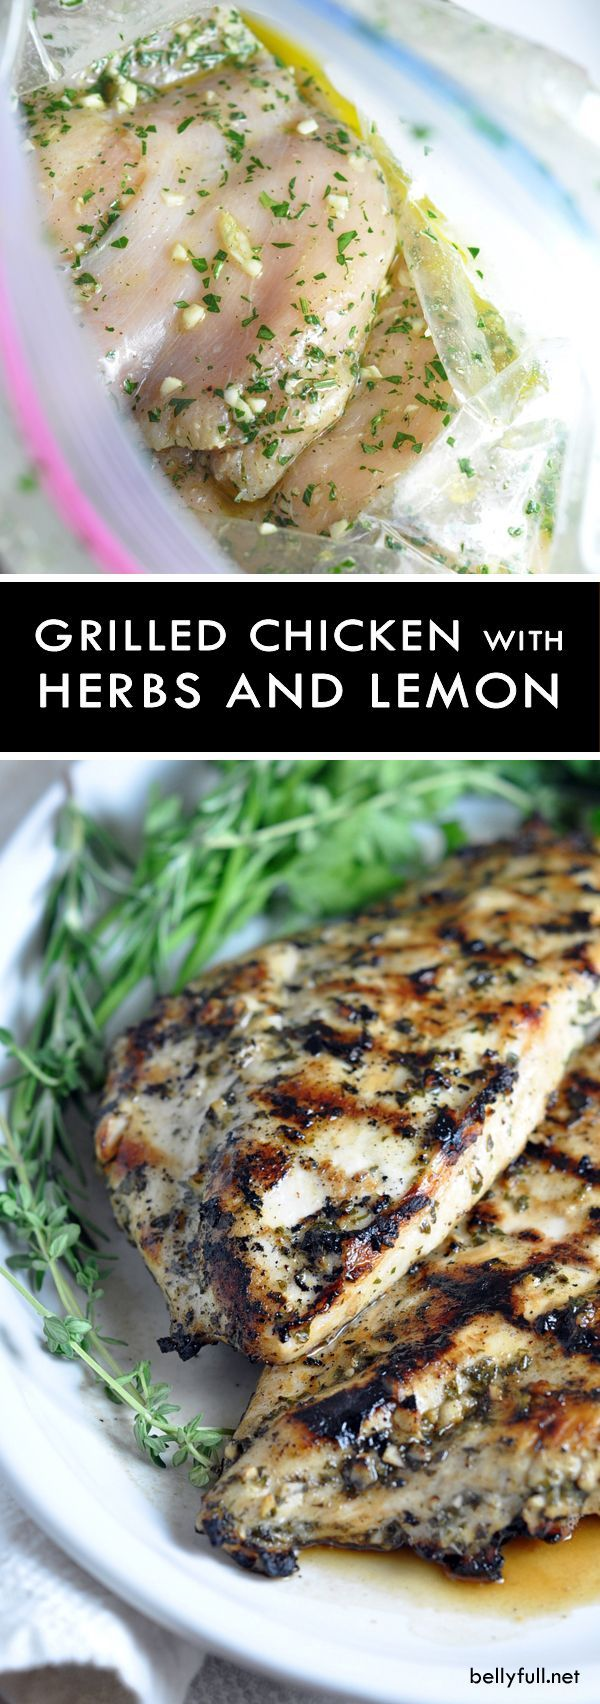 Grilled Chicken Breasts with Herbs and Lemon - this simple no-fail grilled chicken recipe can be enjoyed with any vegetable for an easy weeknight meal. Use up any left overs in a sandwich the next day!: